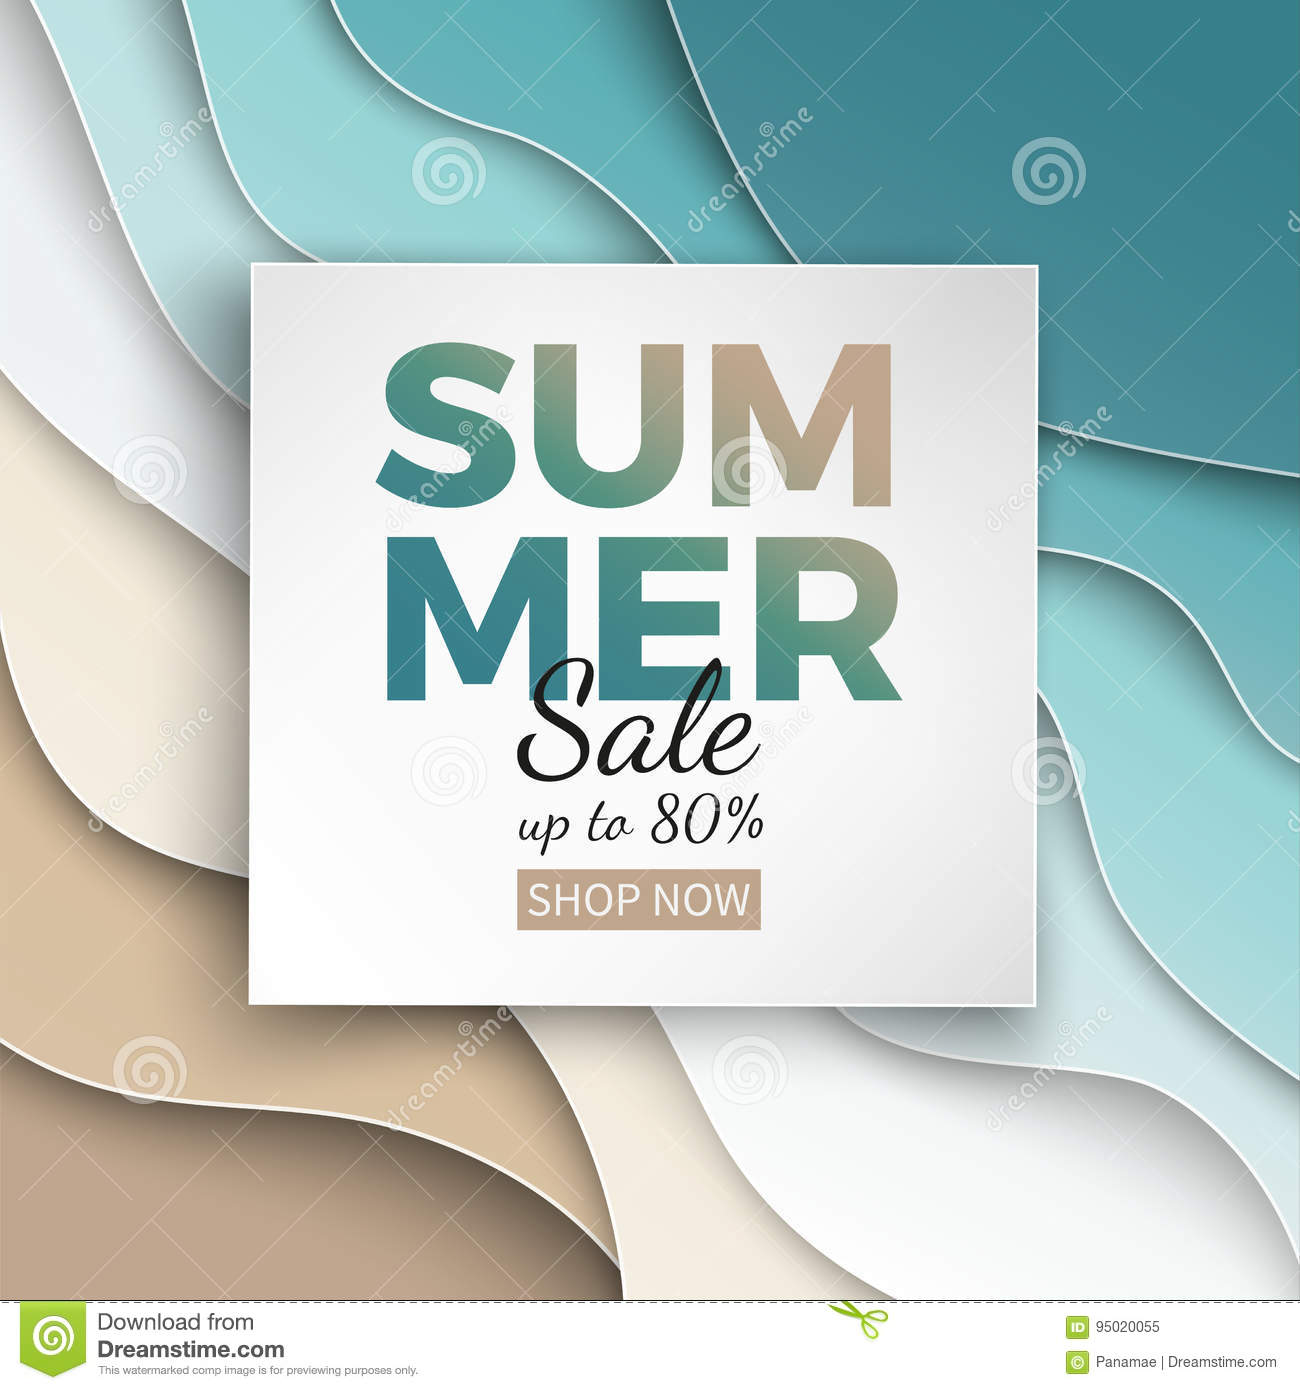 Summer sale banner with paper cut frame on blue sea and beach summer background with curve paper waves and seacoast for design